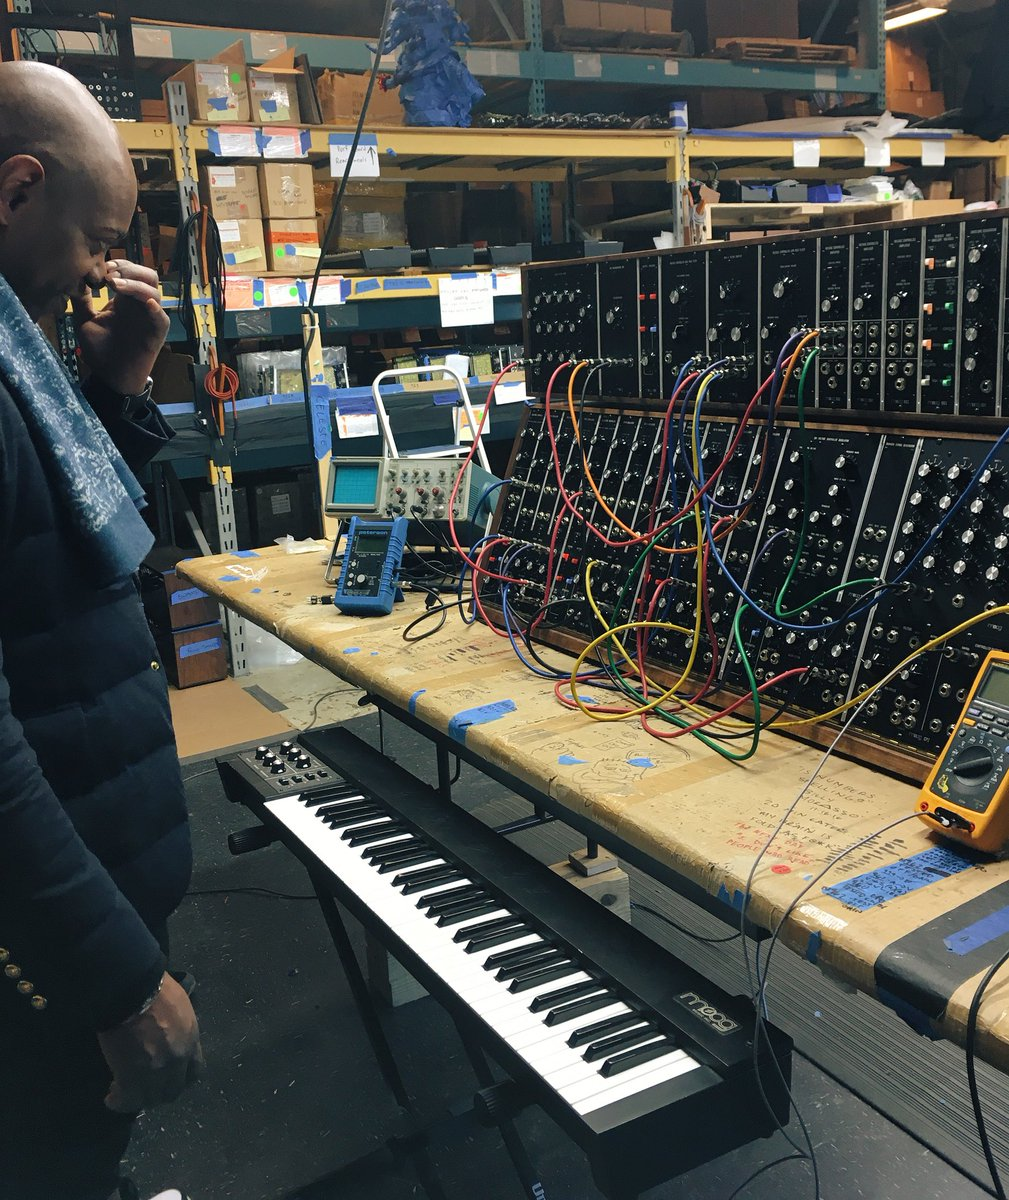 #DaveChappelle wrapping his head around a #Moog Modular. #moogfactory